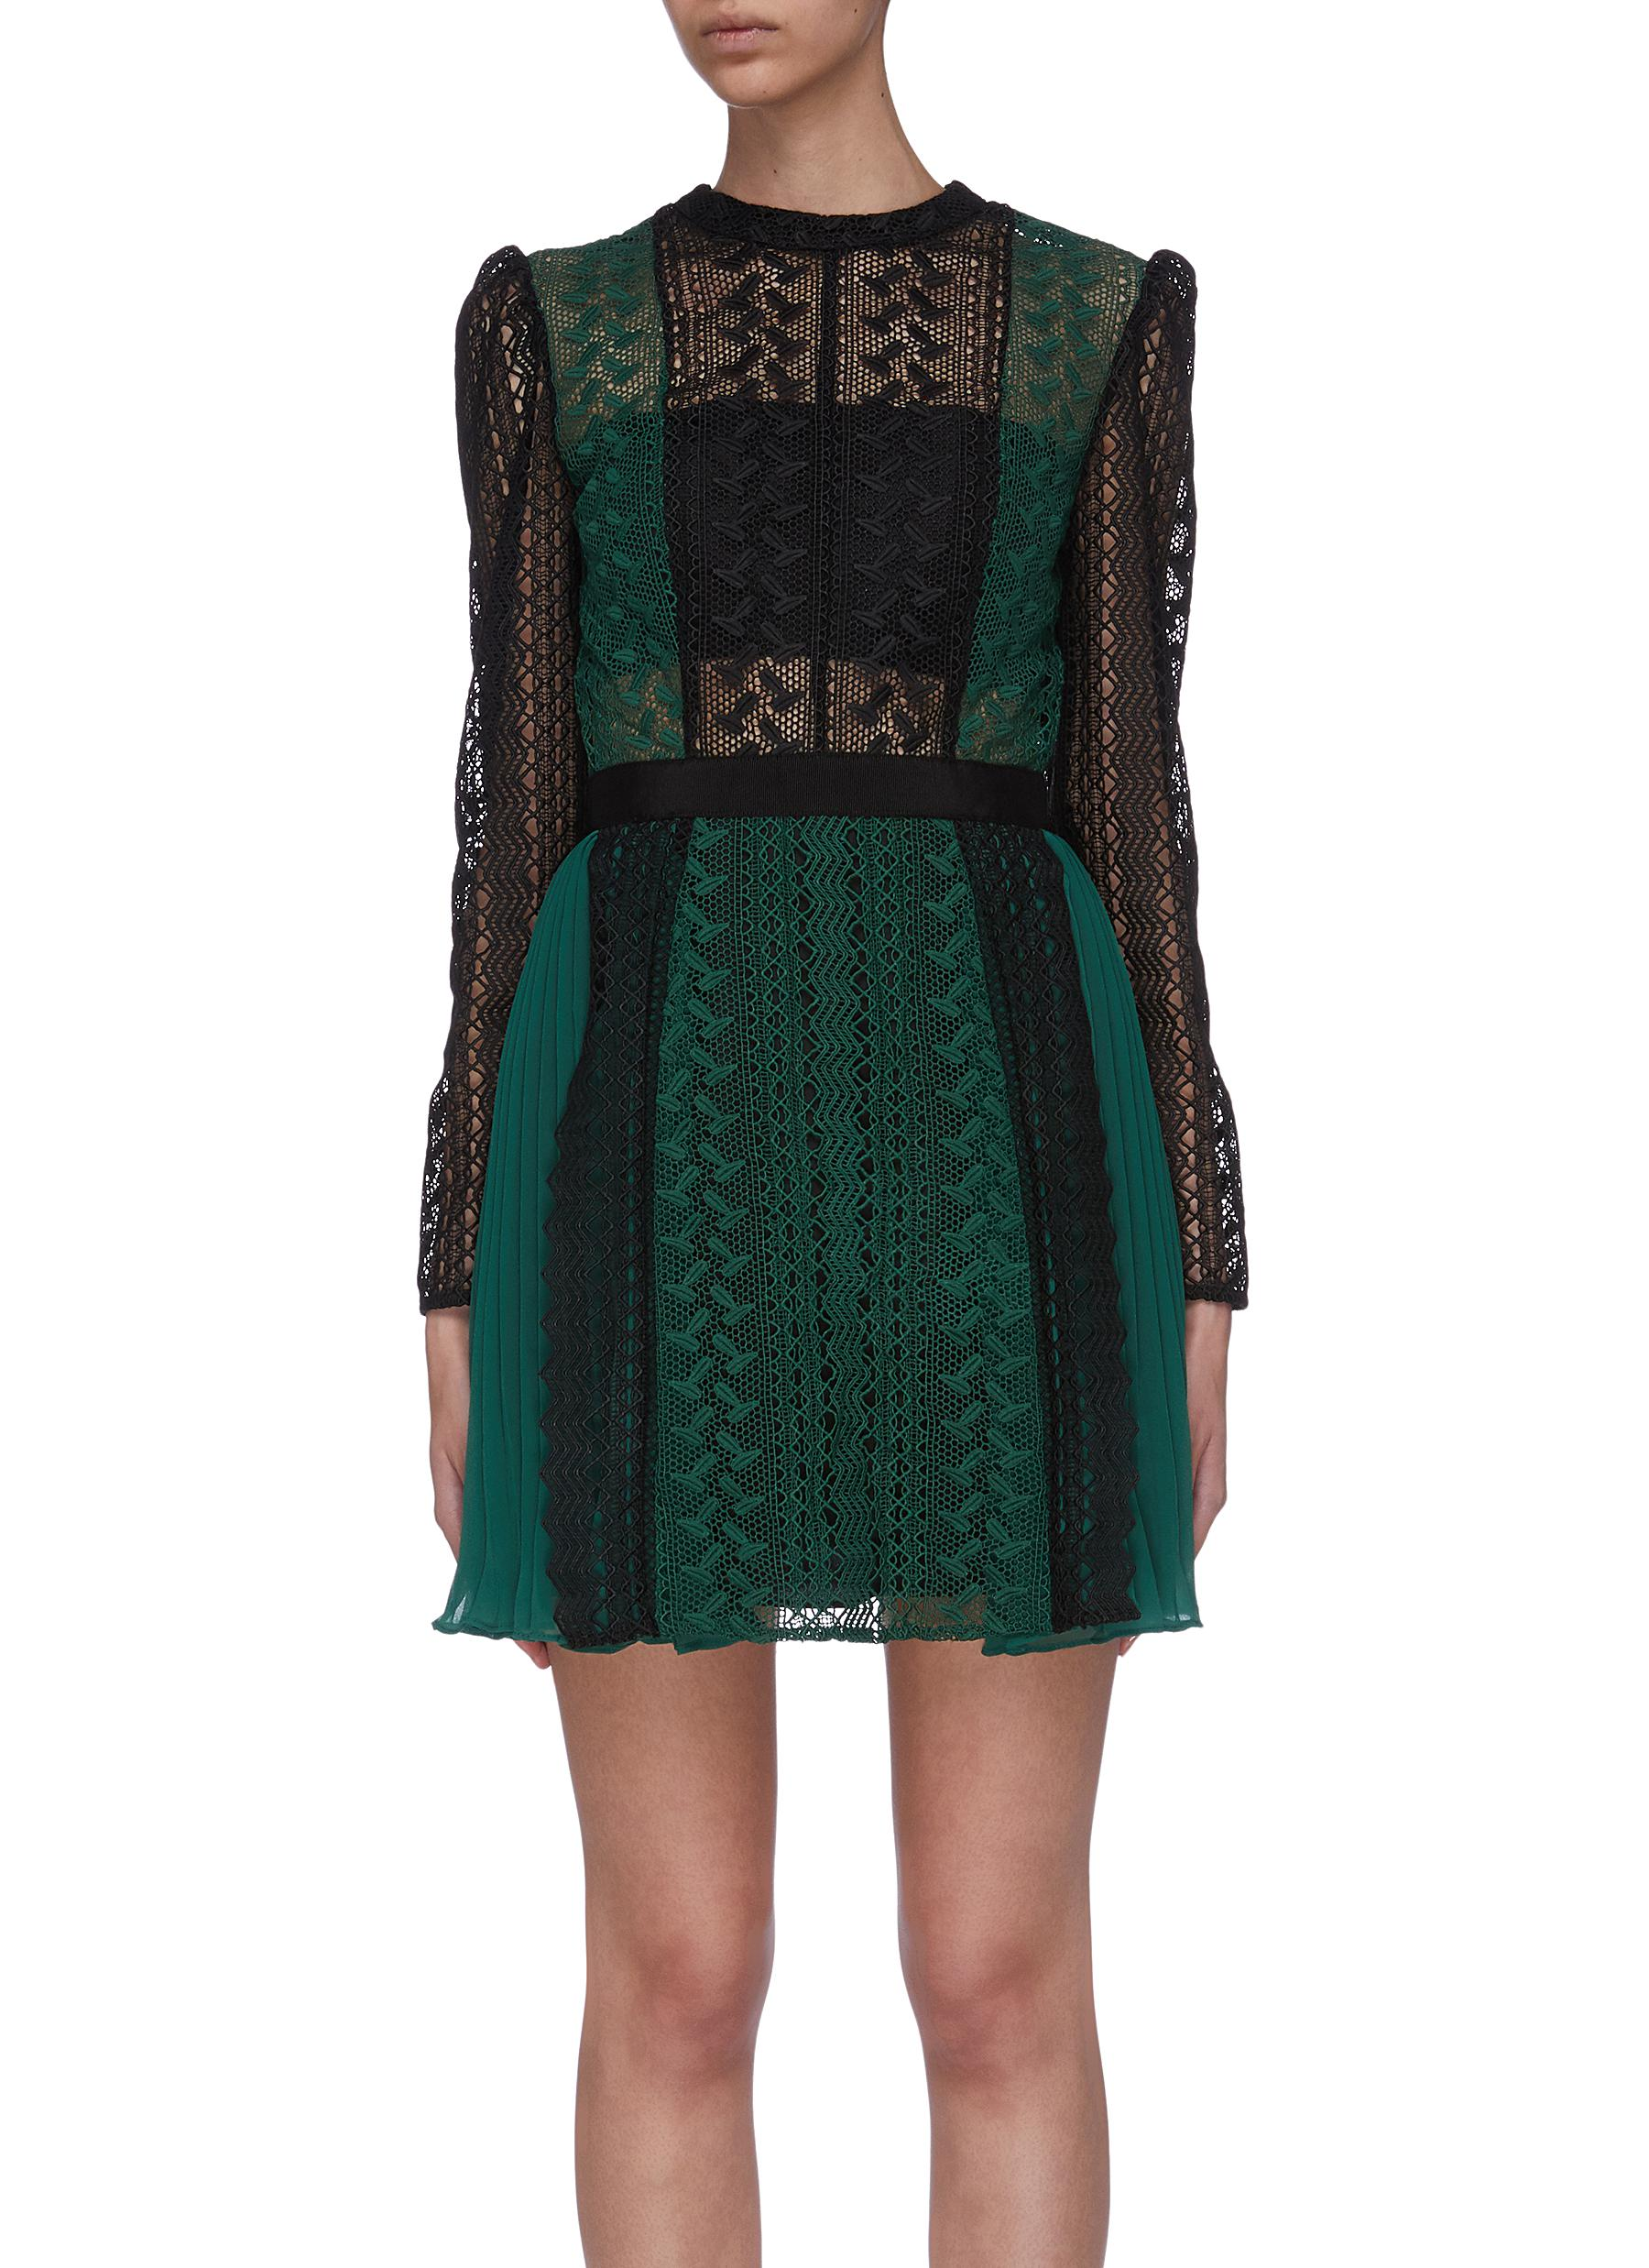 Colourblock lace overlay panelled dress by Self-Portrait